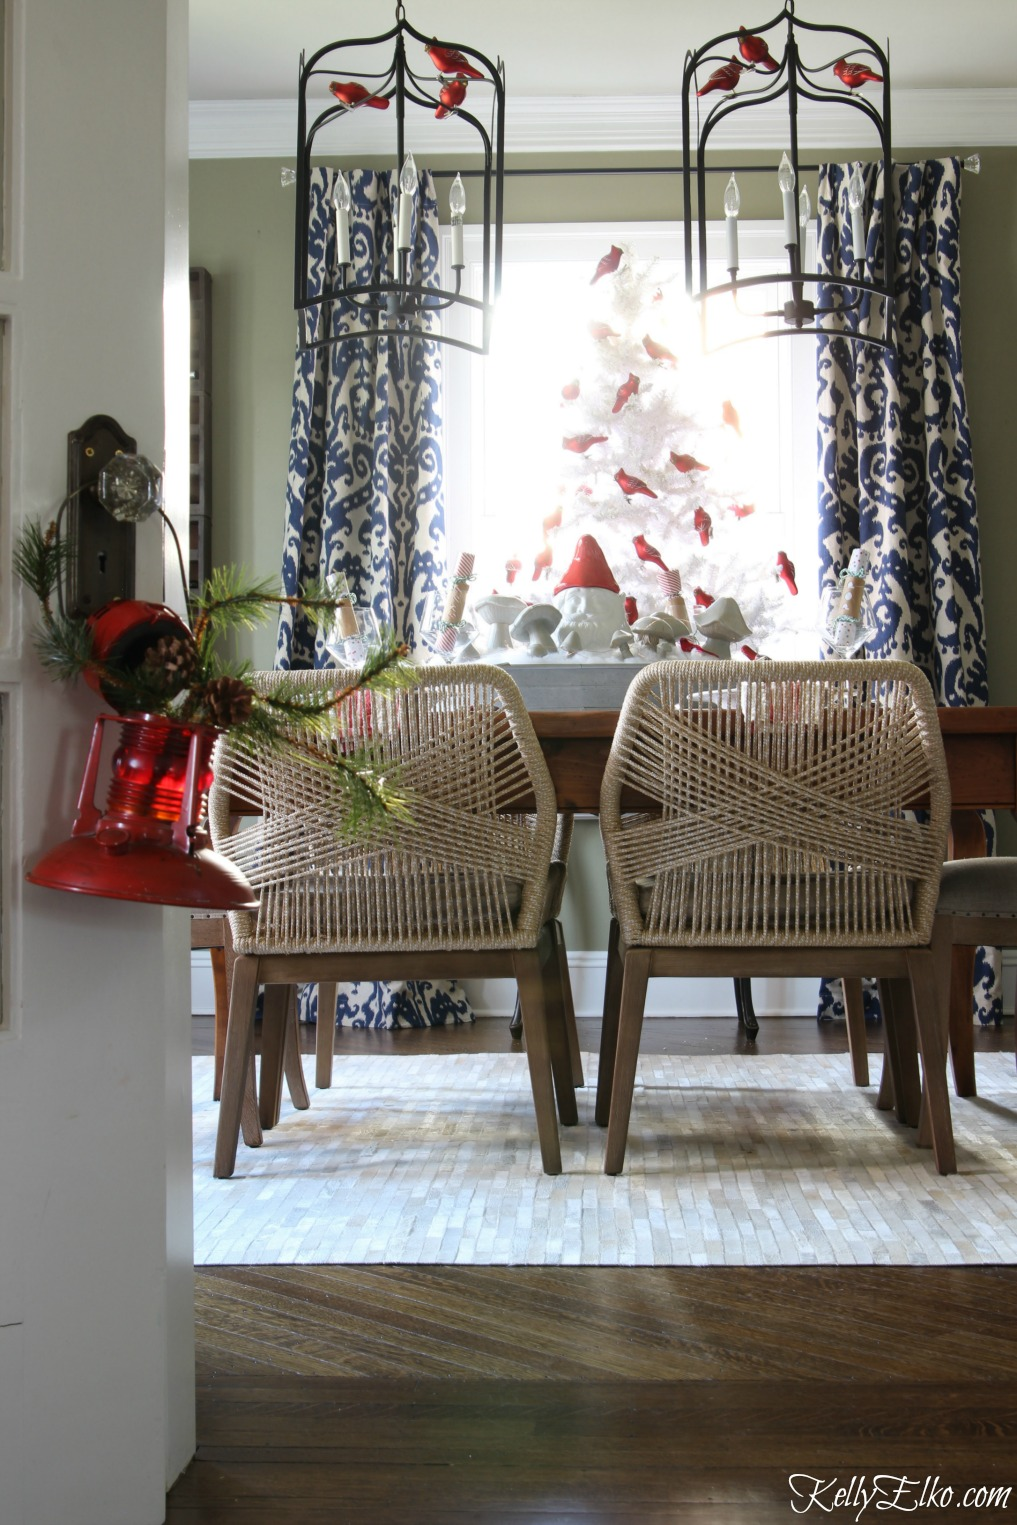 Love this festive Christmas dining room with white flocked tree and those amazing rope chairs! kellyelko.com